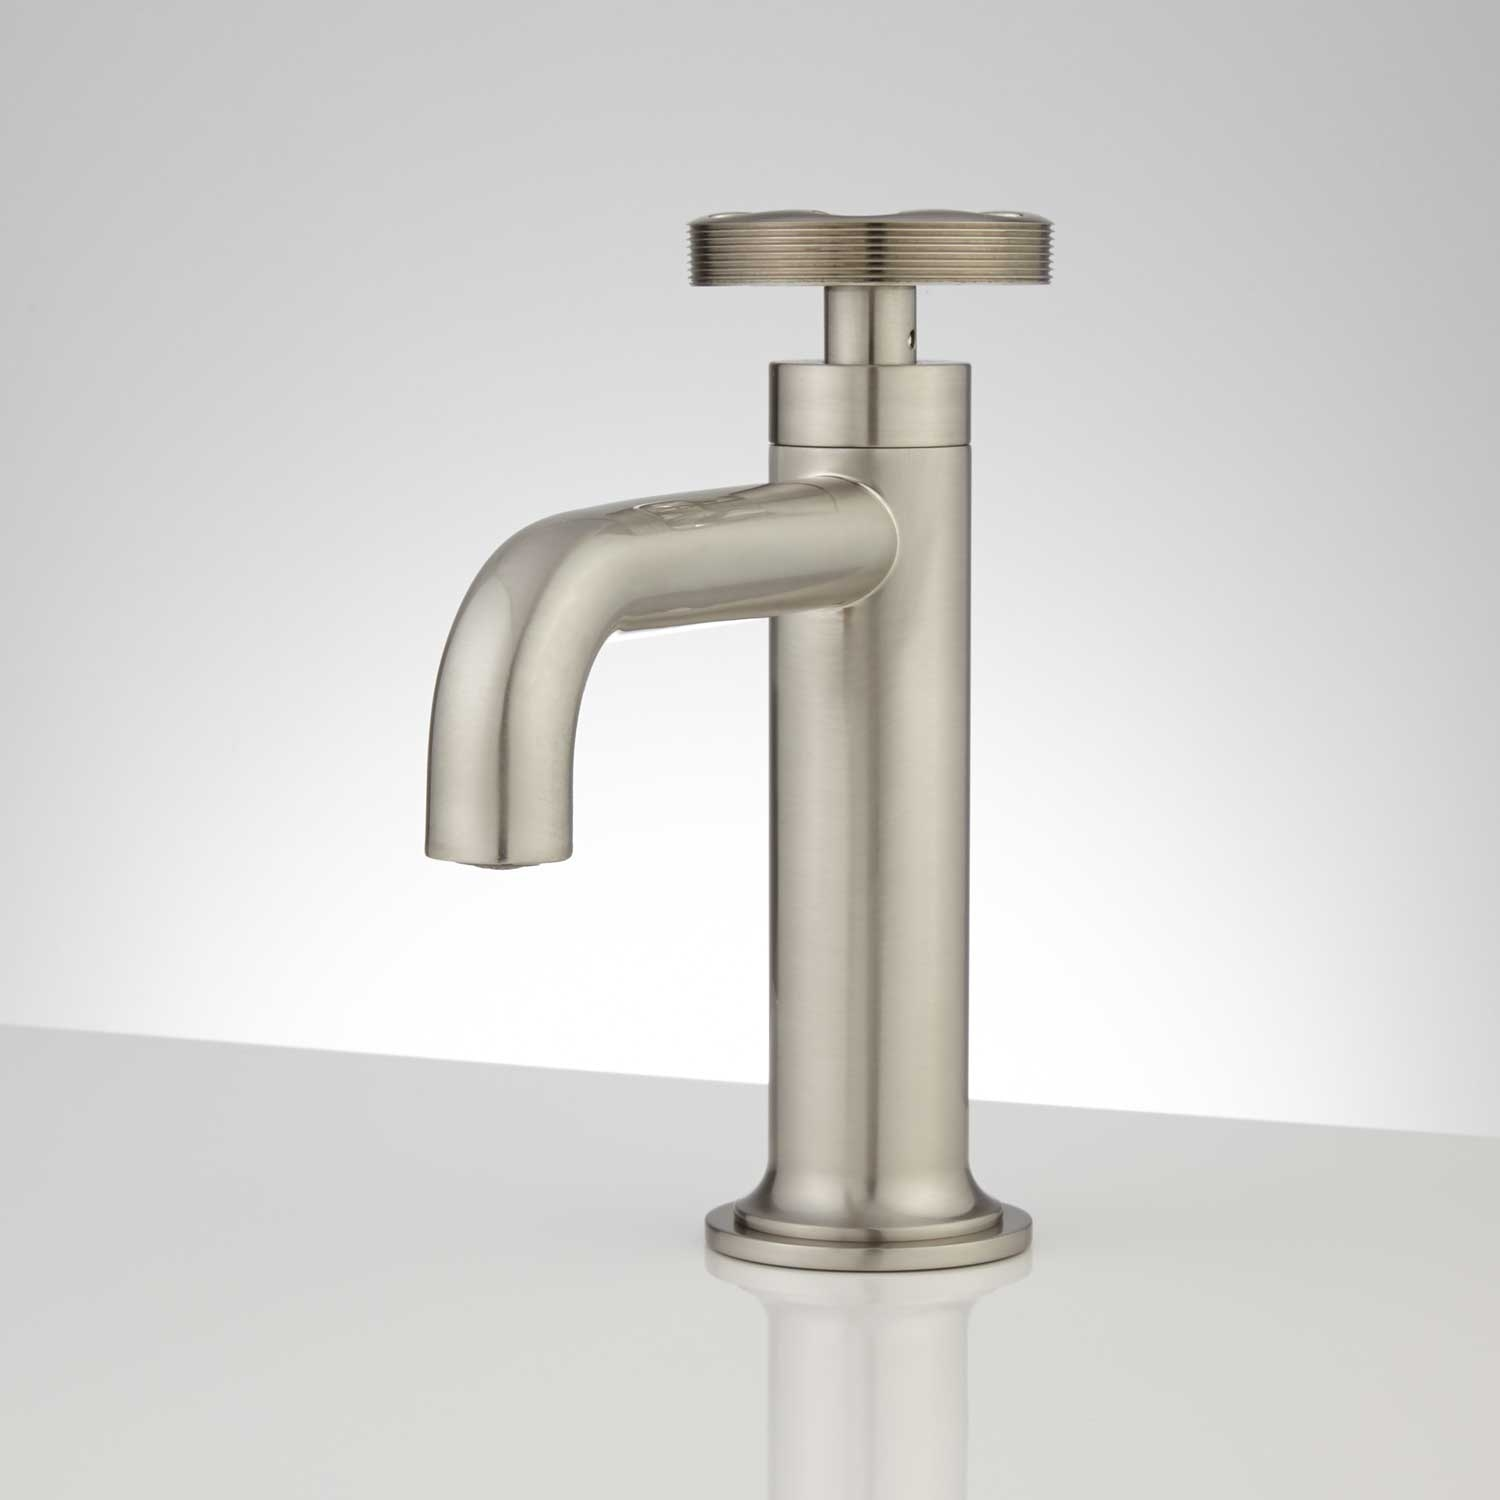 Ideas, solid brass bathroom sink faucets solid brass bathroom sink faucets bathroom solid brass faucet signature hardware 1500 x 1500  .